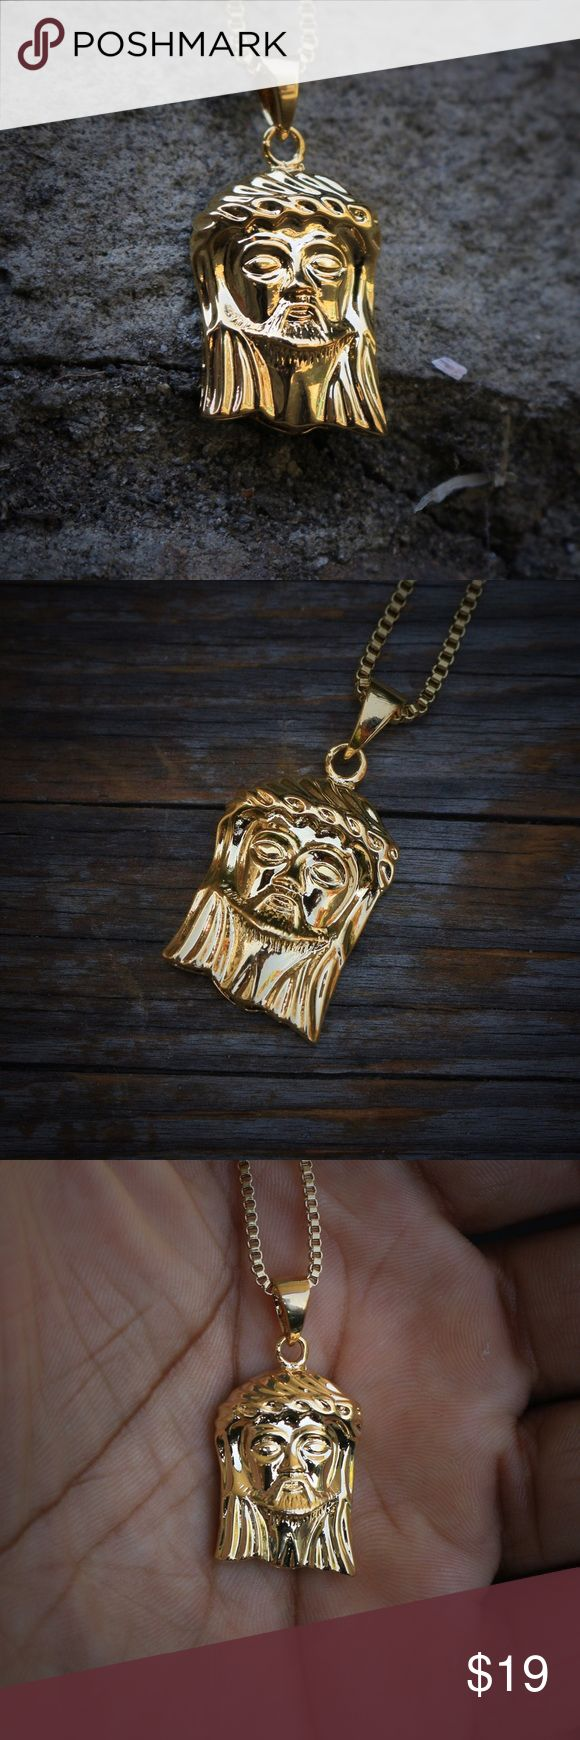 Men's Mini Gold Jesus Piece Necklace Mini Micro Gold Jesus Piece Stainless Steel 18k Gold Plated  ion plating is one of the most advanced surface finishing processes in the trade.  ion plating makes the gold plating more durable, more wear resistant, and also has a higher brightness  Size of the pendant is approximately 1.5 inches tall.  Comes with a 1.5mm width 20 inch length 18k gold plated stainless steel box chain . Ts Verniel Accessories Jewelry